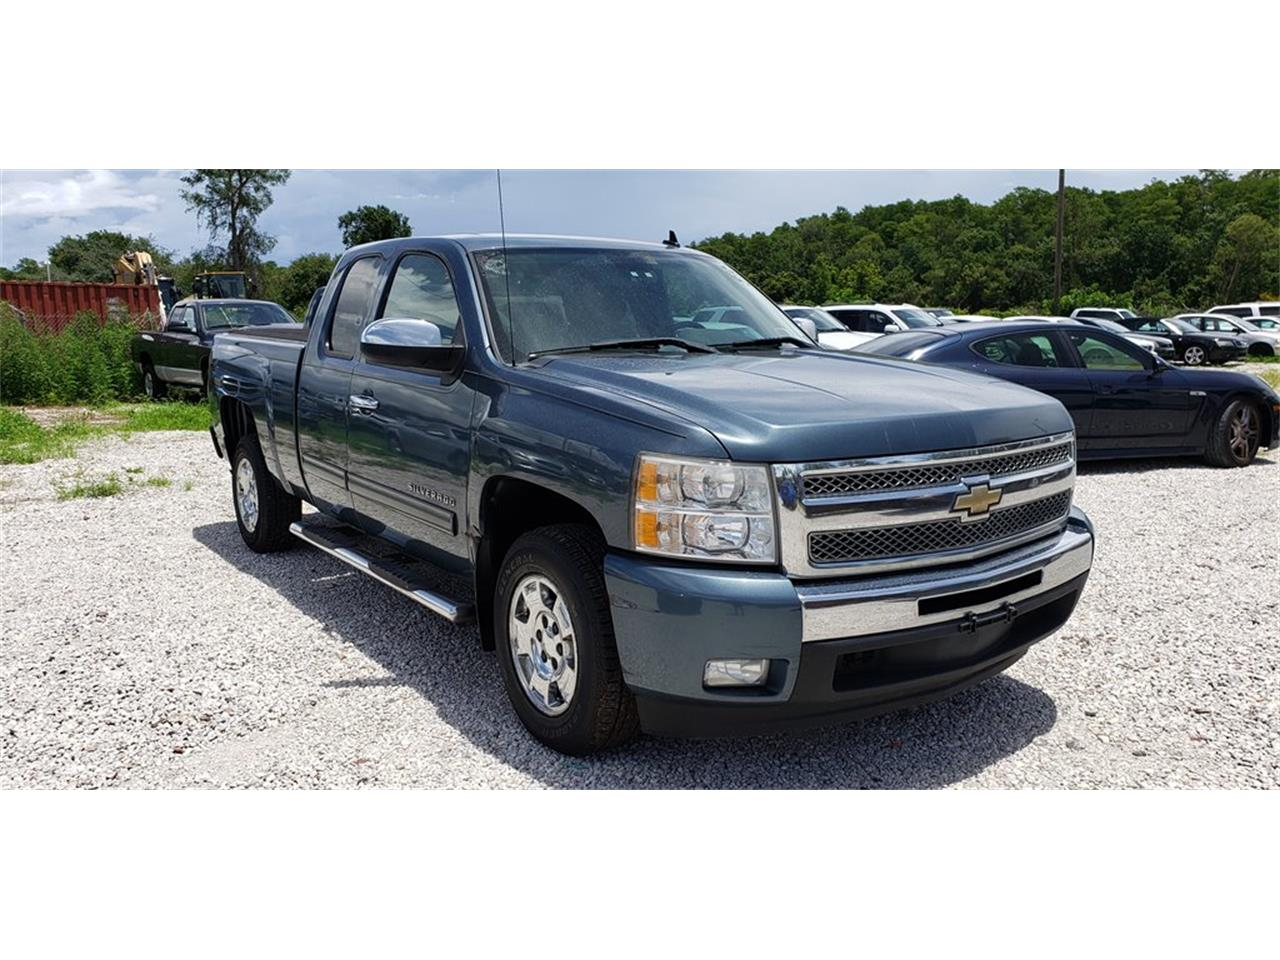 2011 Chevrolet Silverado for sale in Orlando, FL – photo 2